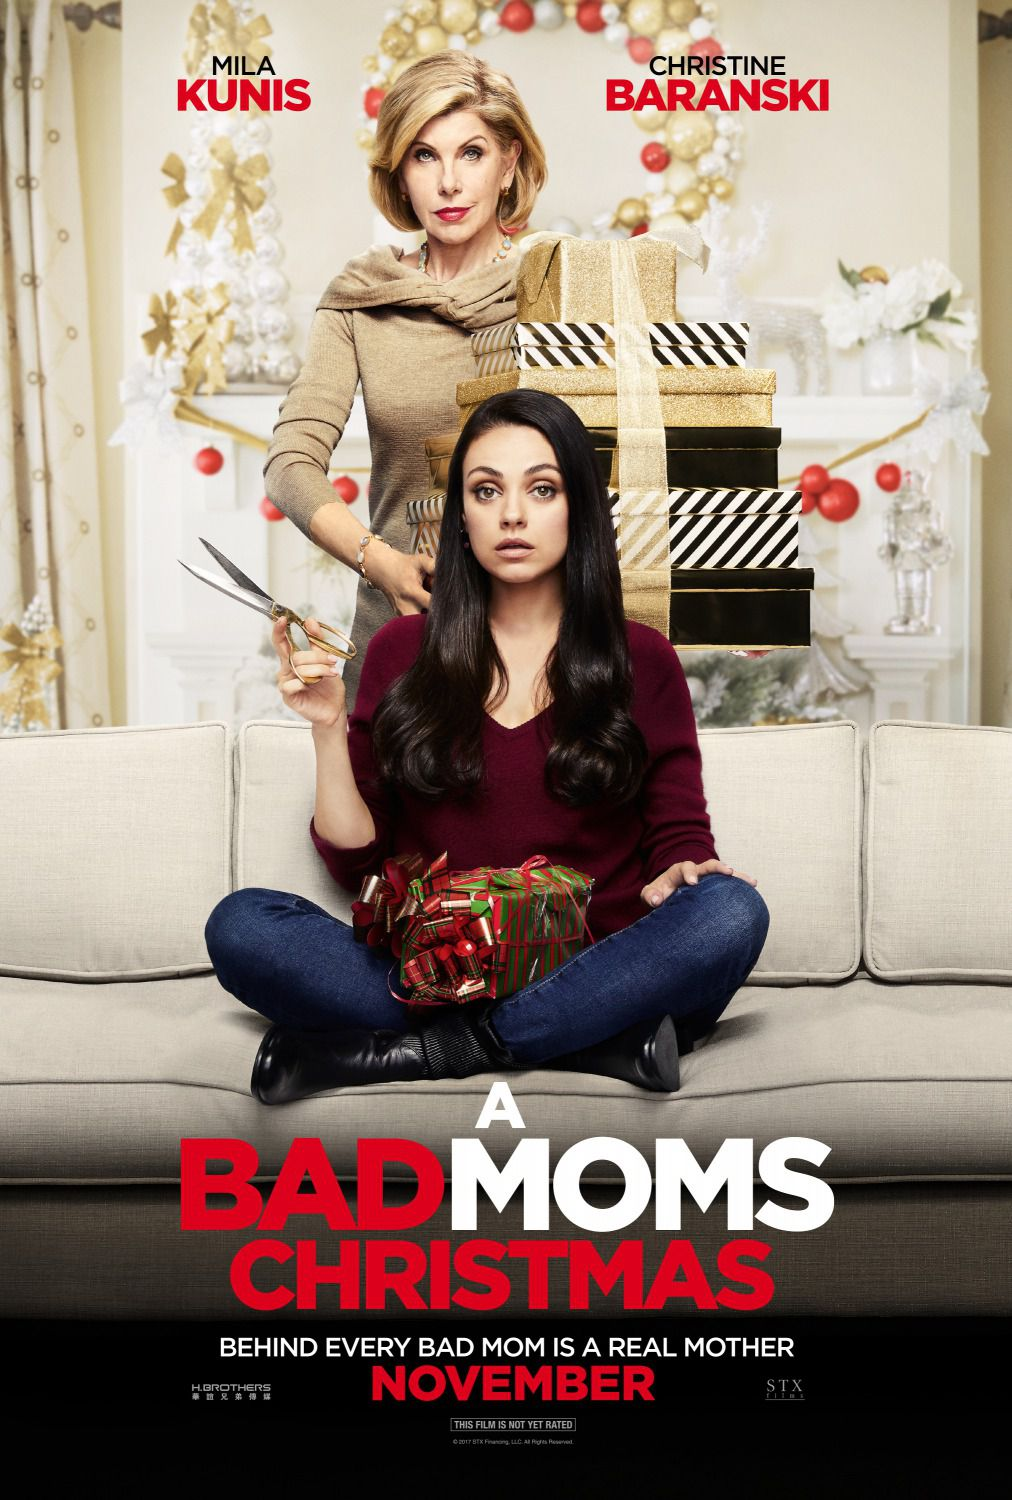 Bad Moms Christmas - Bad Moms 2 – Mamme molto più cattive - film poster - Mila Kunis - Christine Baranski